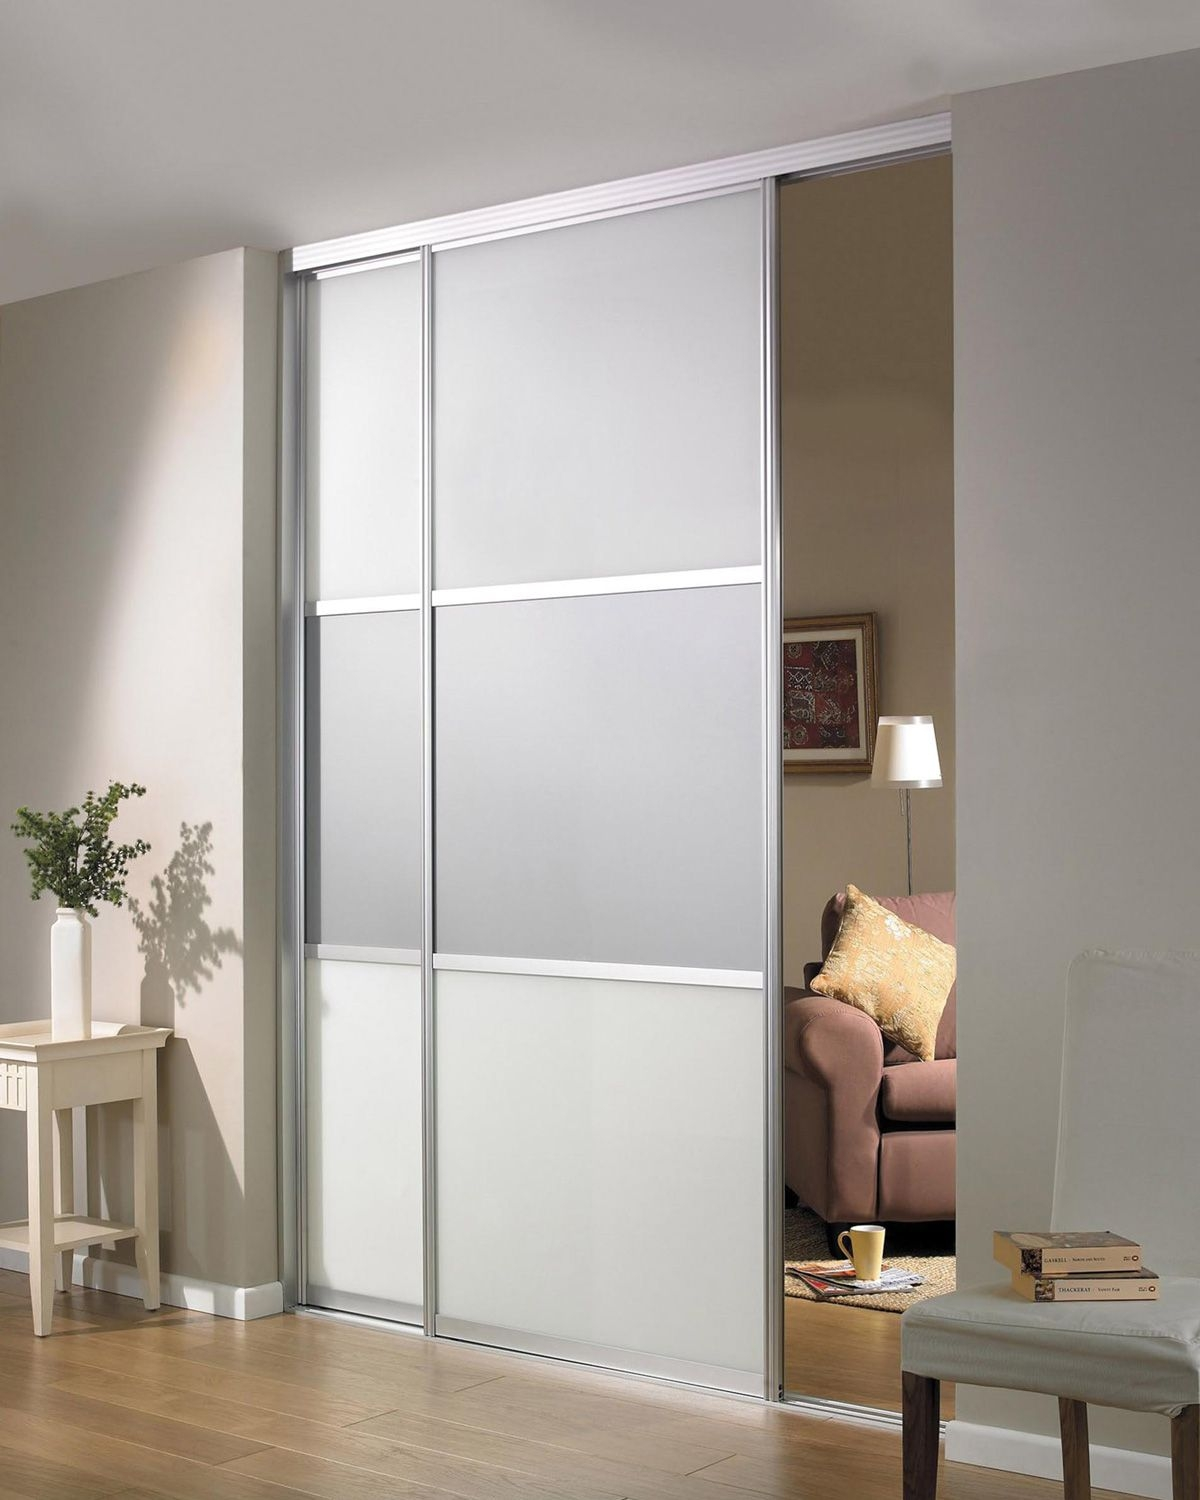 Lovely Sliding Room Divider U2013 More Privacy In The Small Apartment